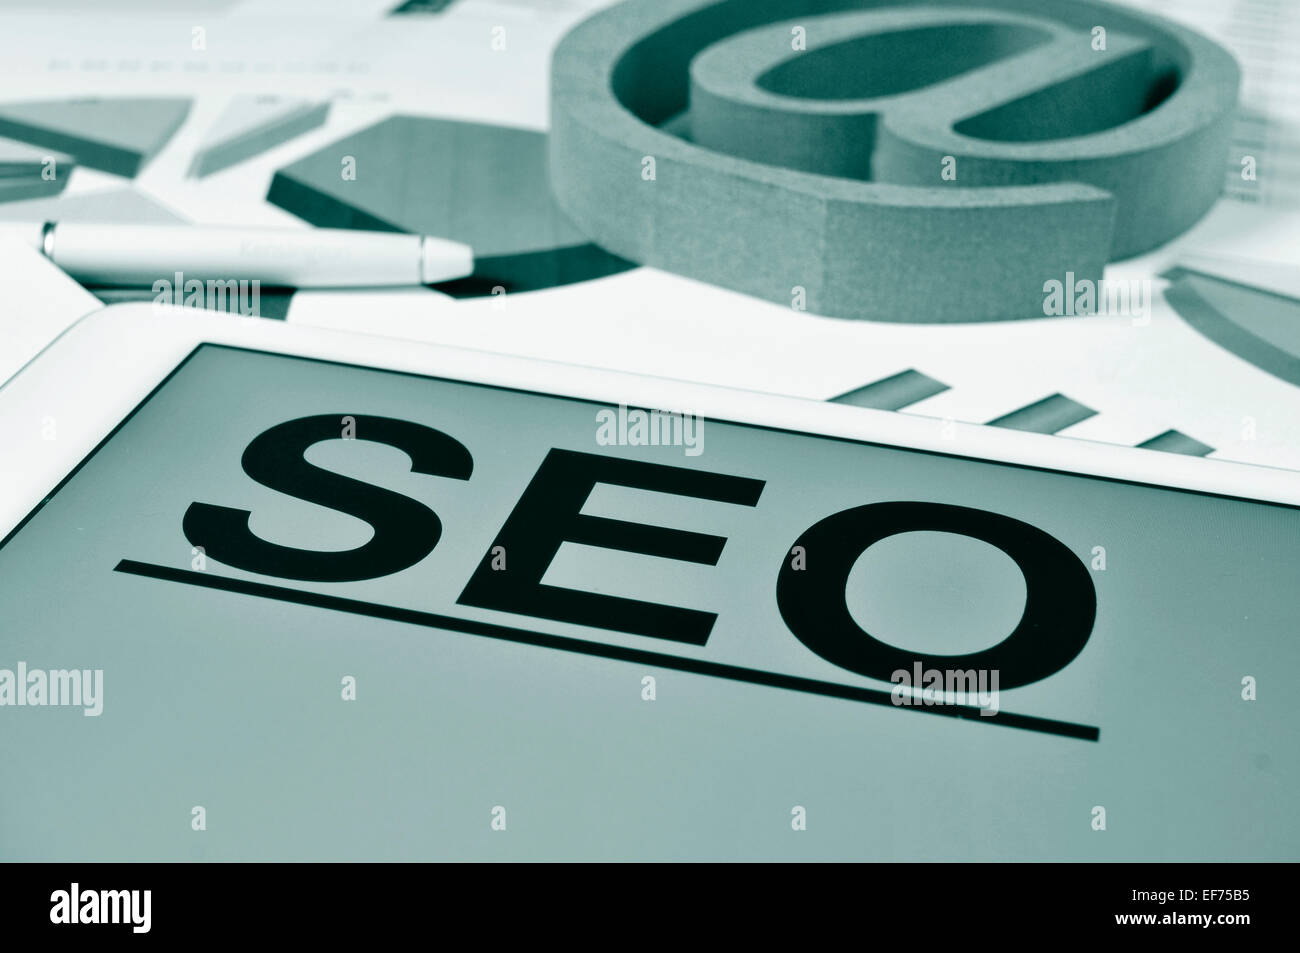 the text SEO, for Search Engine Optimization, in the screen of a tablet - Stock Image